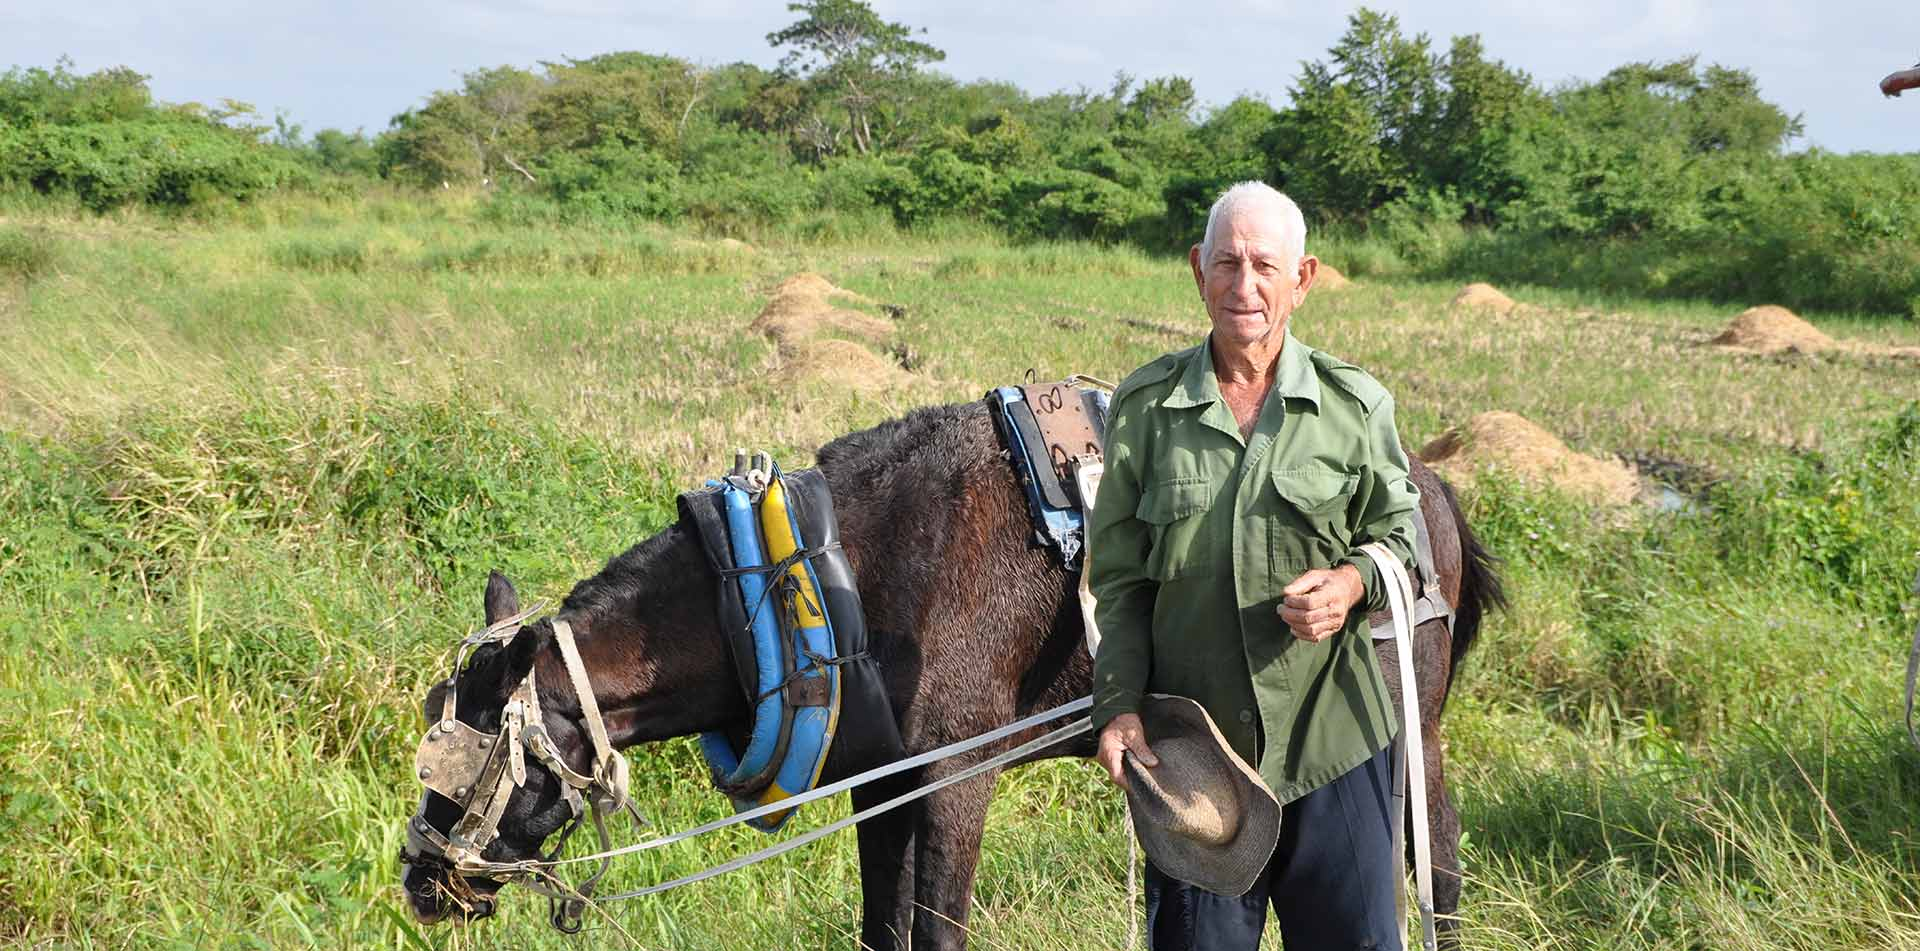 North America Caribbean Cuba countryside green grass local farmer horse - luxury vacation destinations